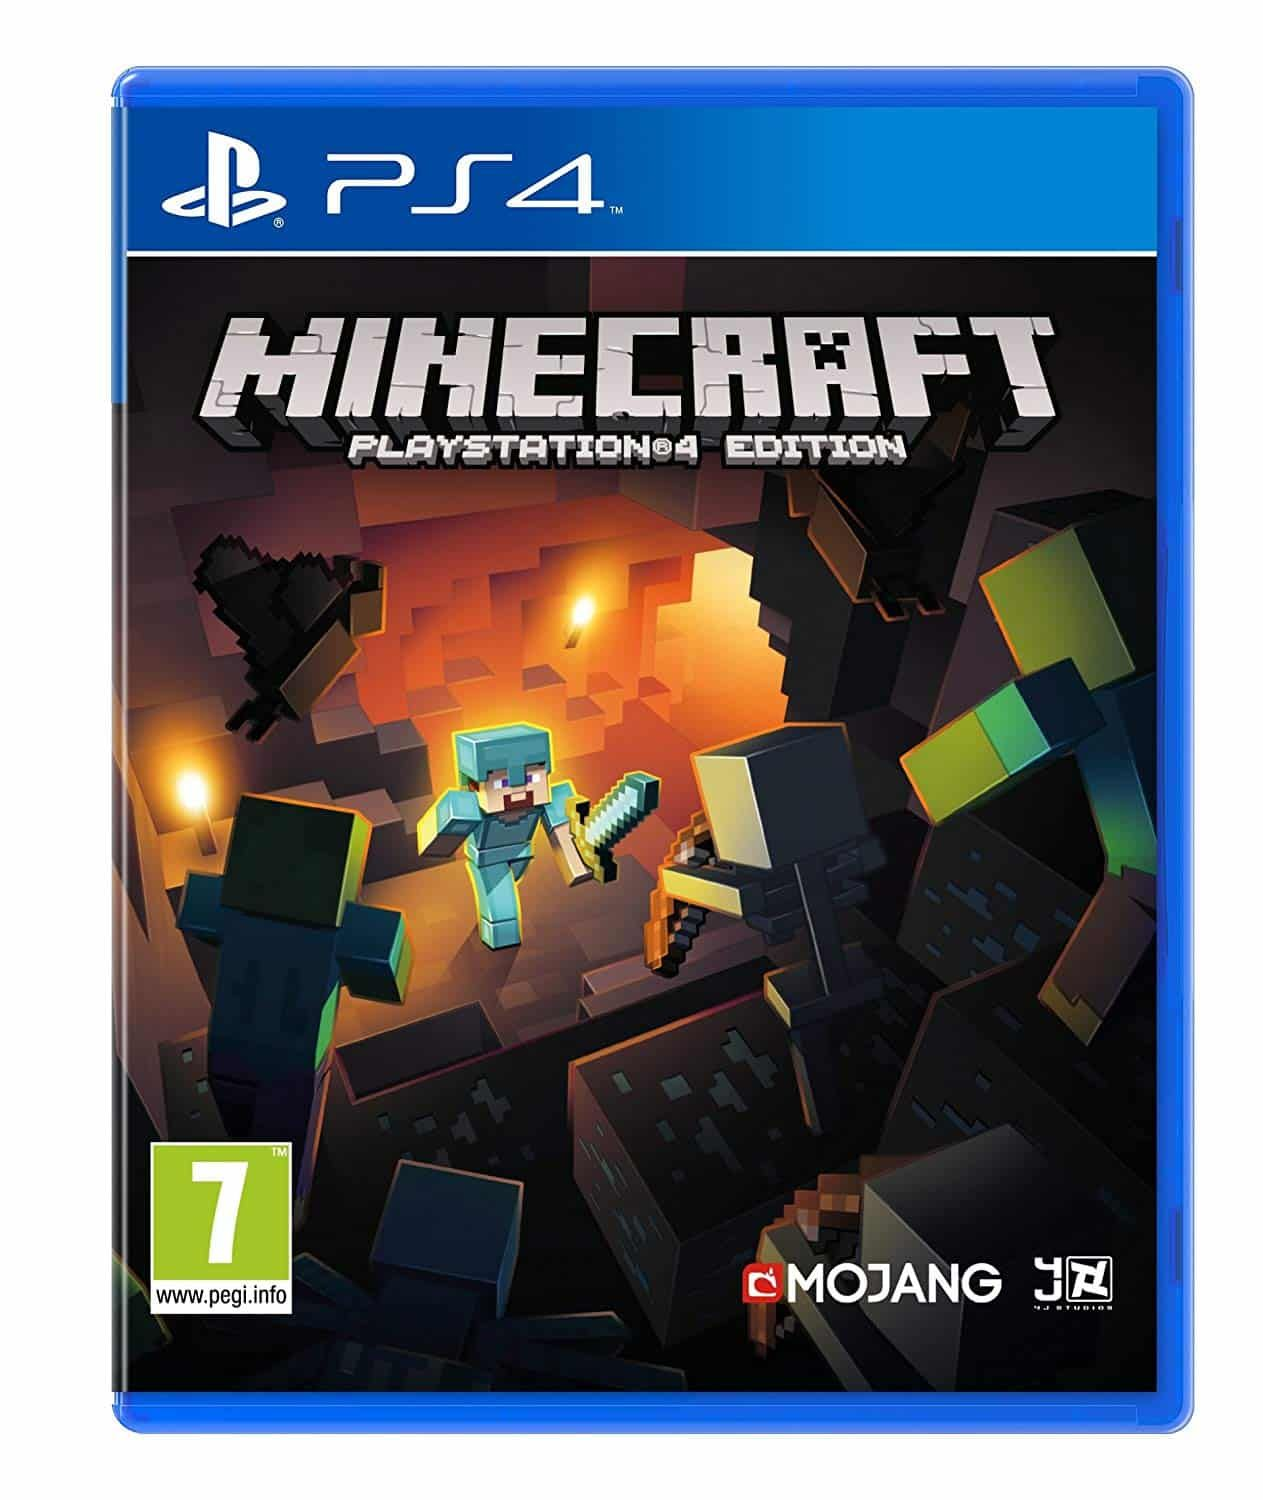 Minecraft Ps4 Price In India Gaming Bazar Of Namokar Ngw Minecraft Ps4 Video Games Ps4 Ps4 Games